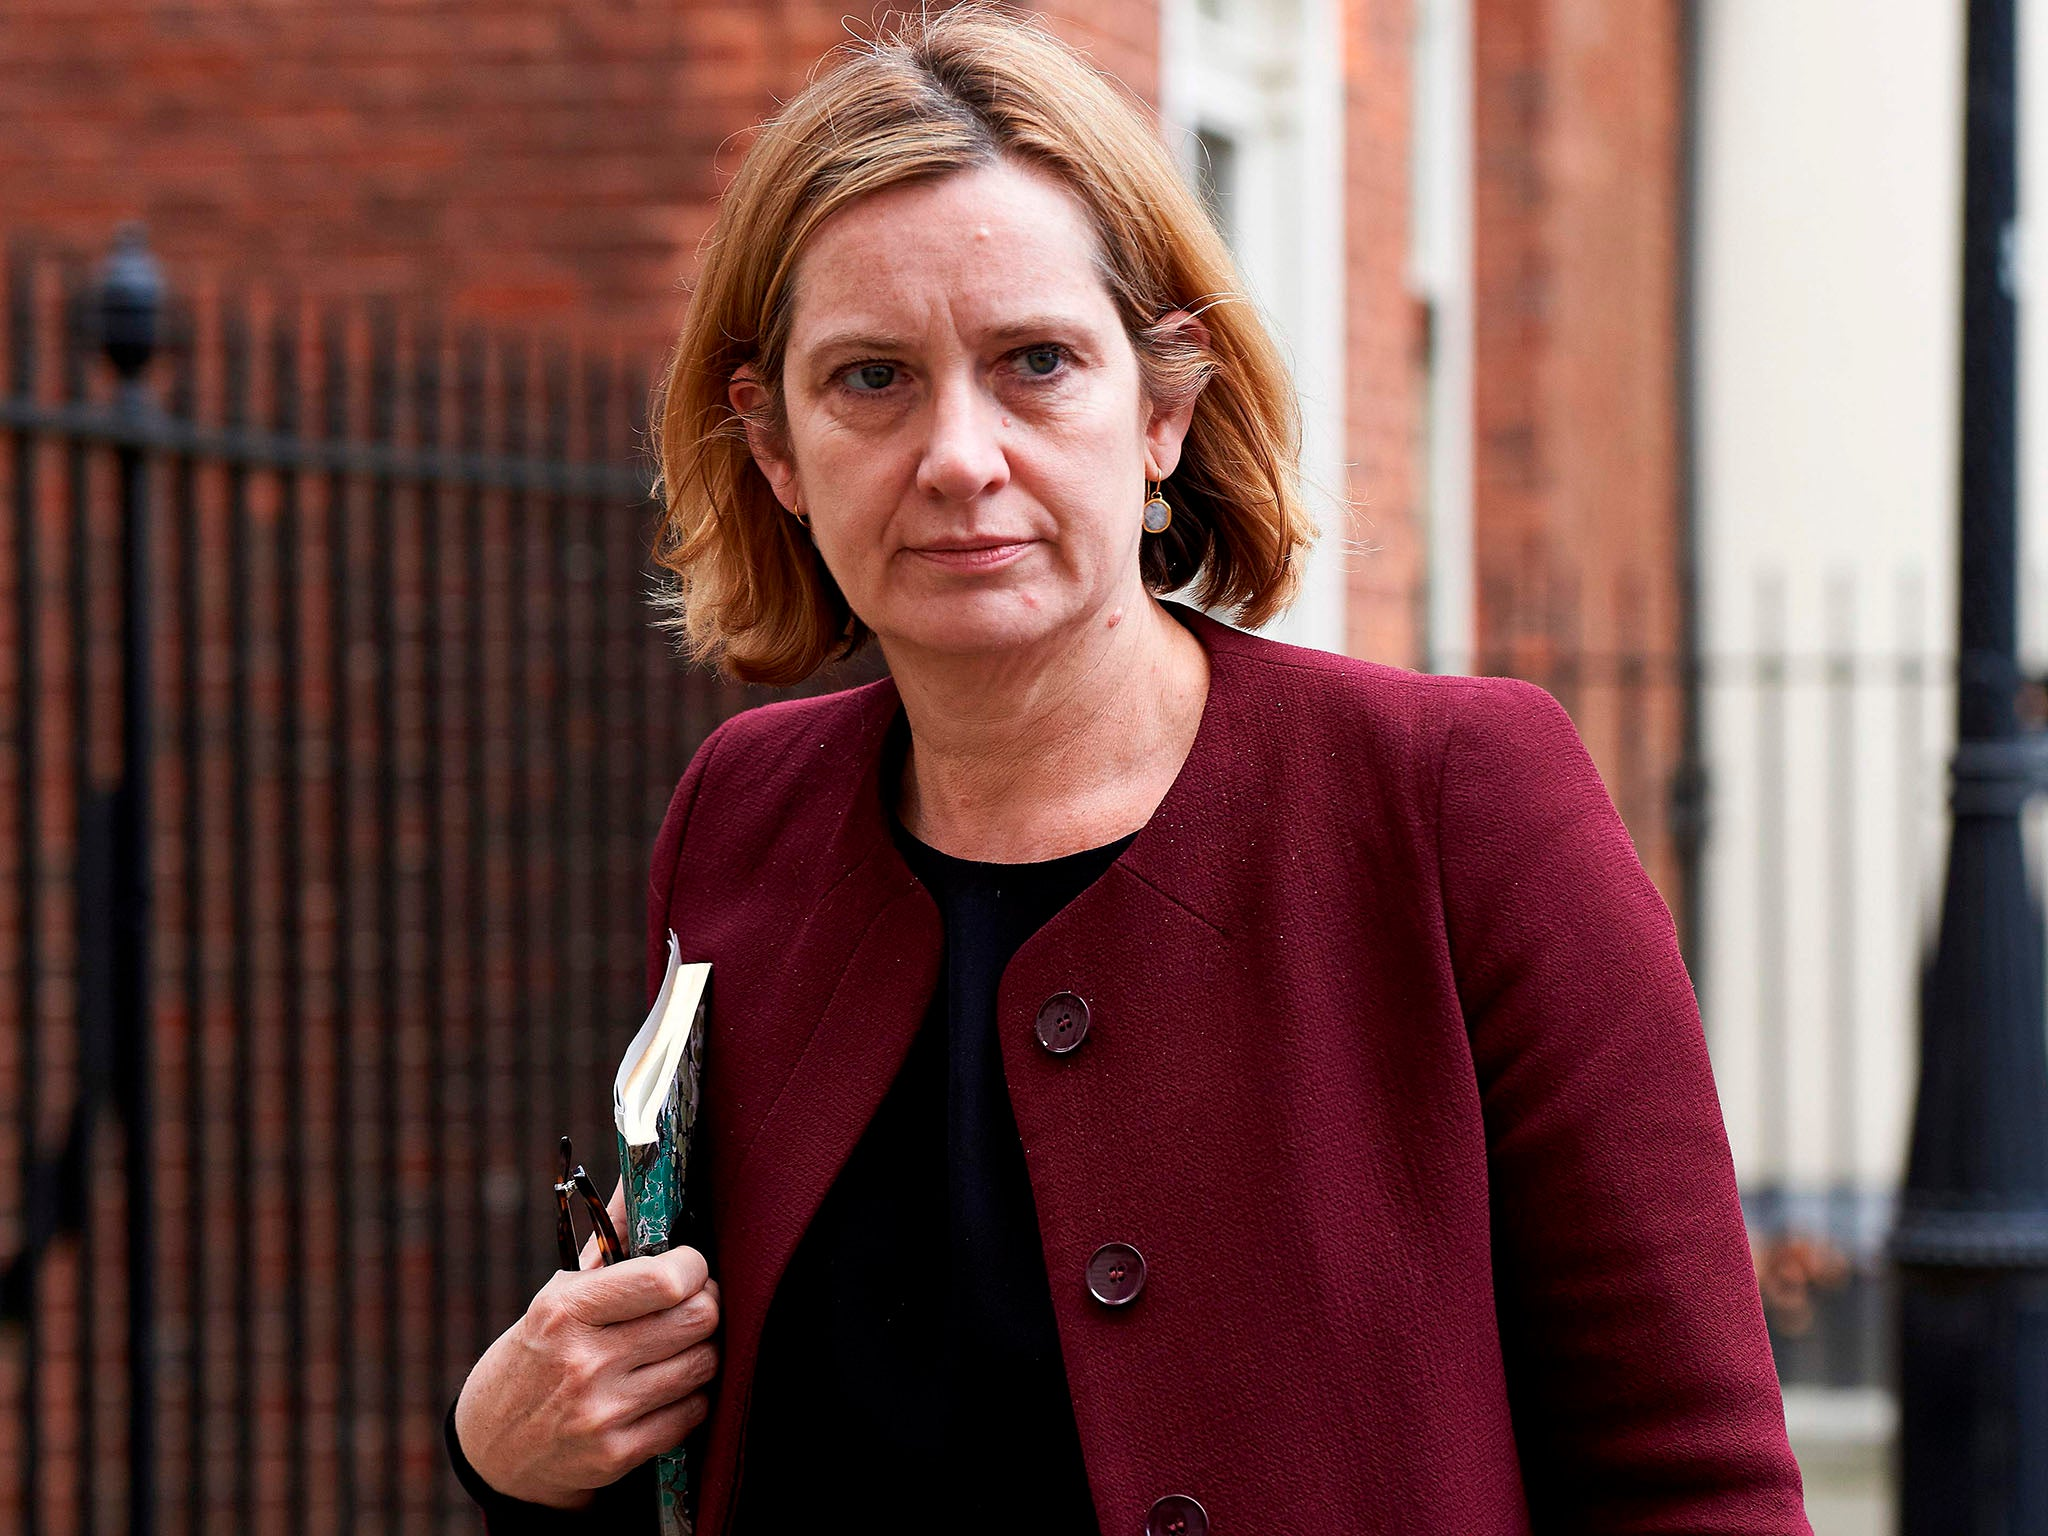 Amber Rudd Under Pressure To Resign As Mother Of Windrush Citizen Blames Passport Battle For Sons The Independent